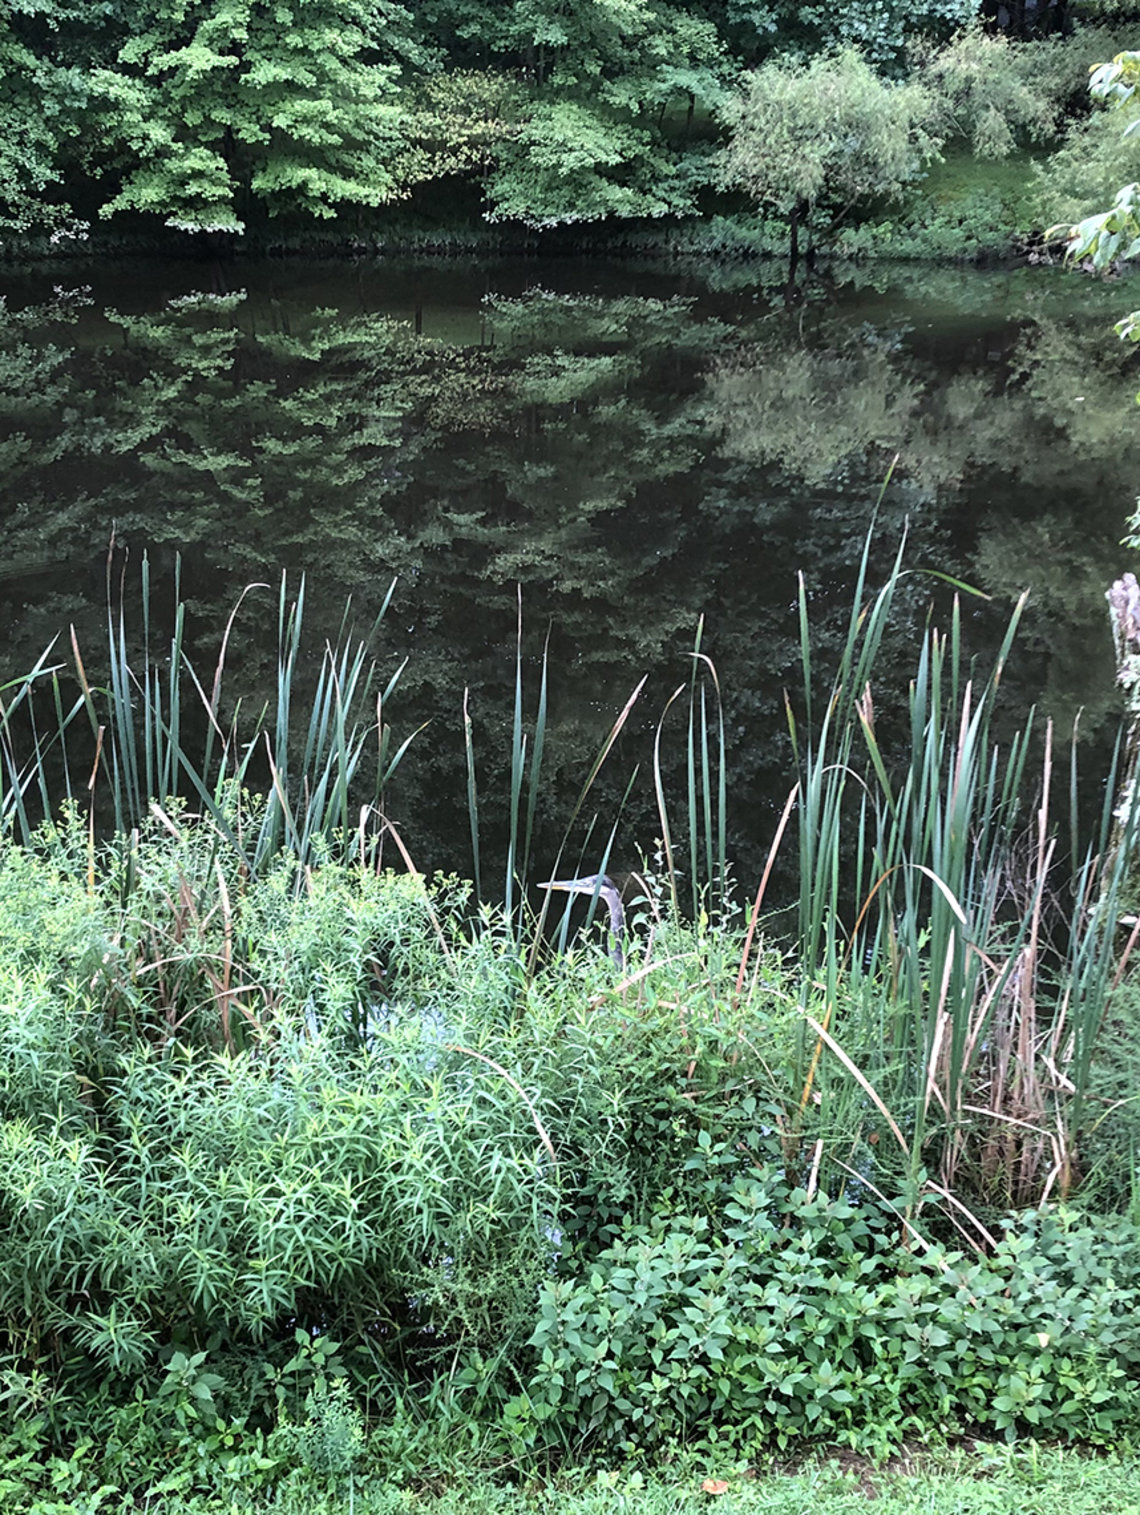 Heron hides among vegetation by the edge of water